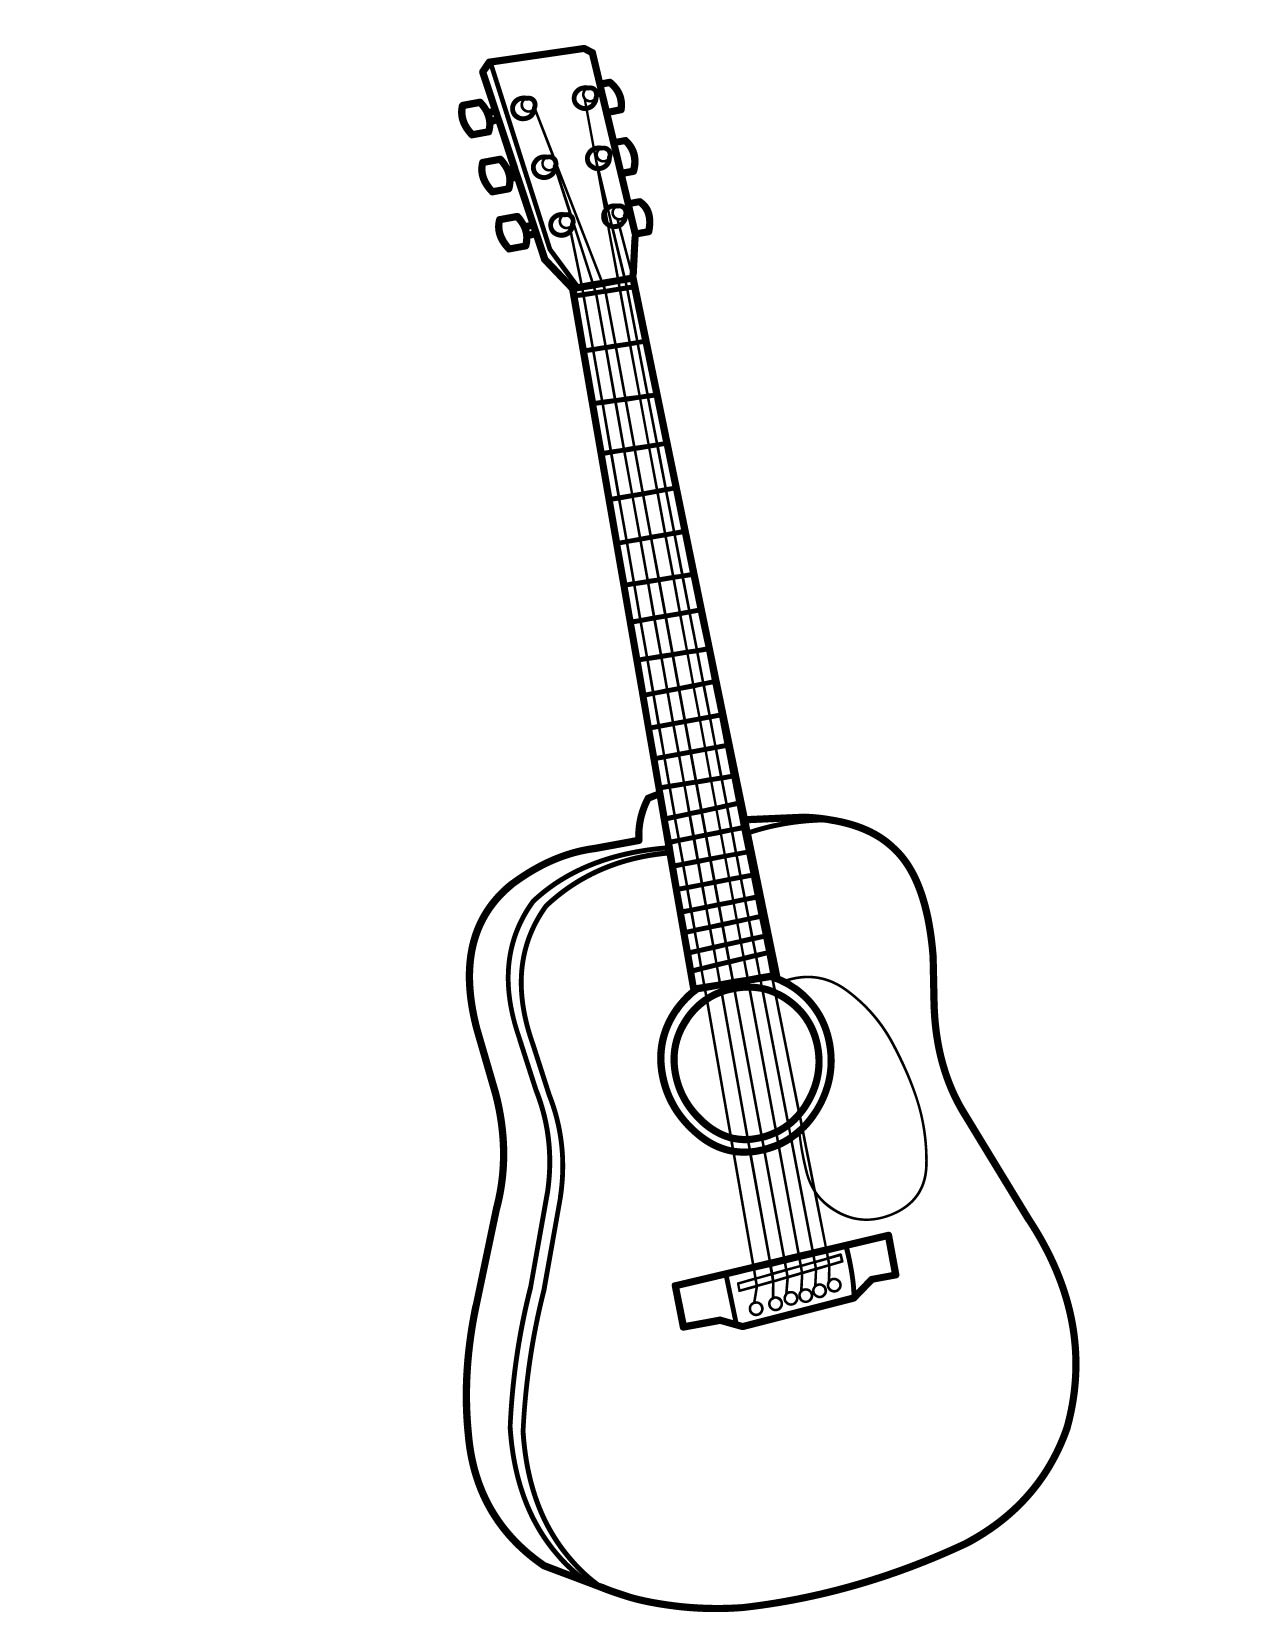 Musical instruments coloring pagesMore Pins Like This e At